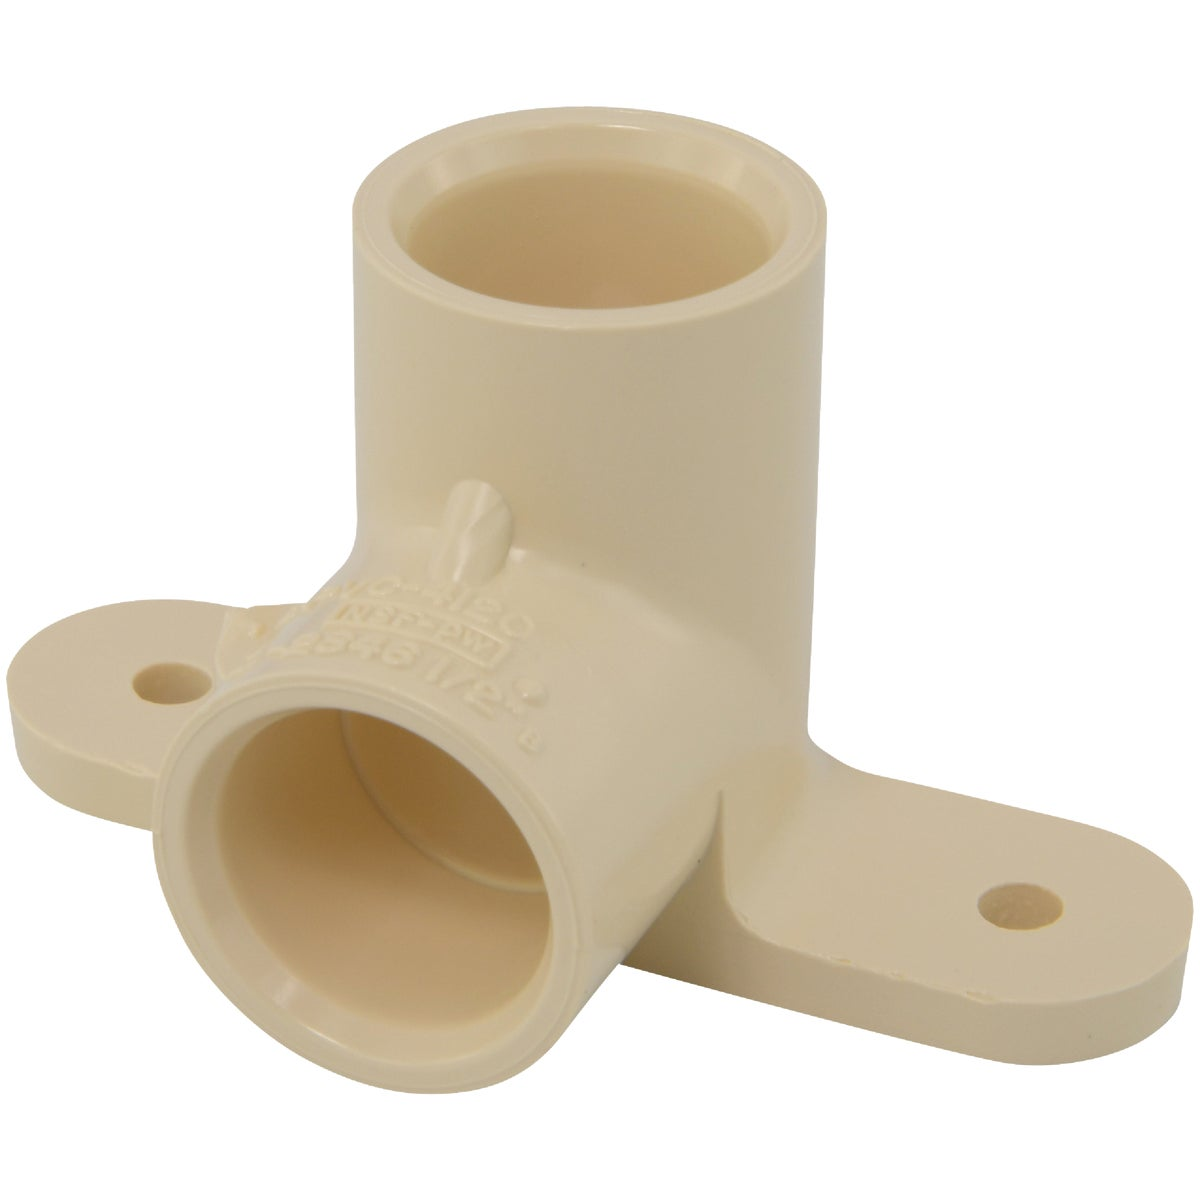 "1/2"" CPVC WING ELBOW - 53056 by Genova Inc"